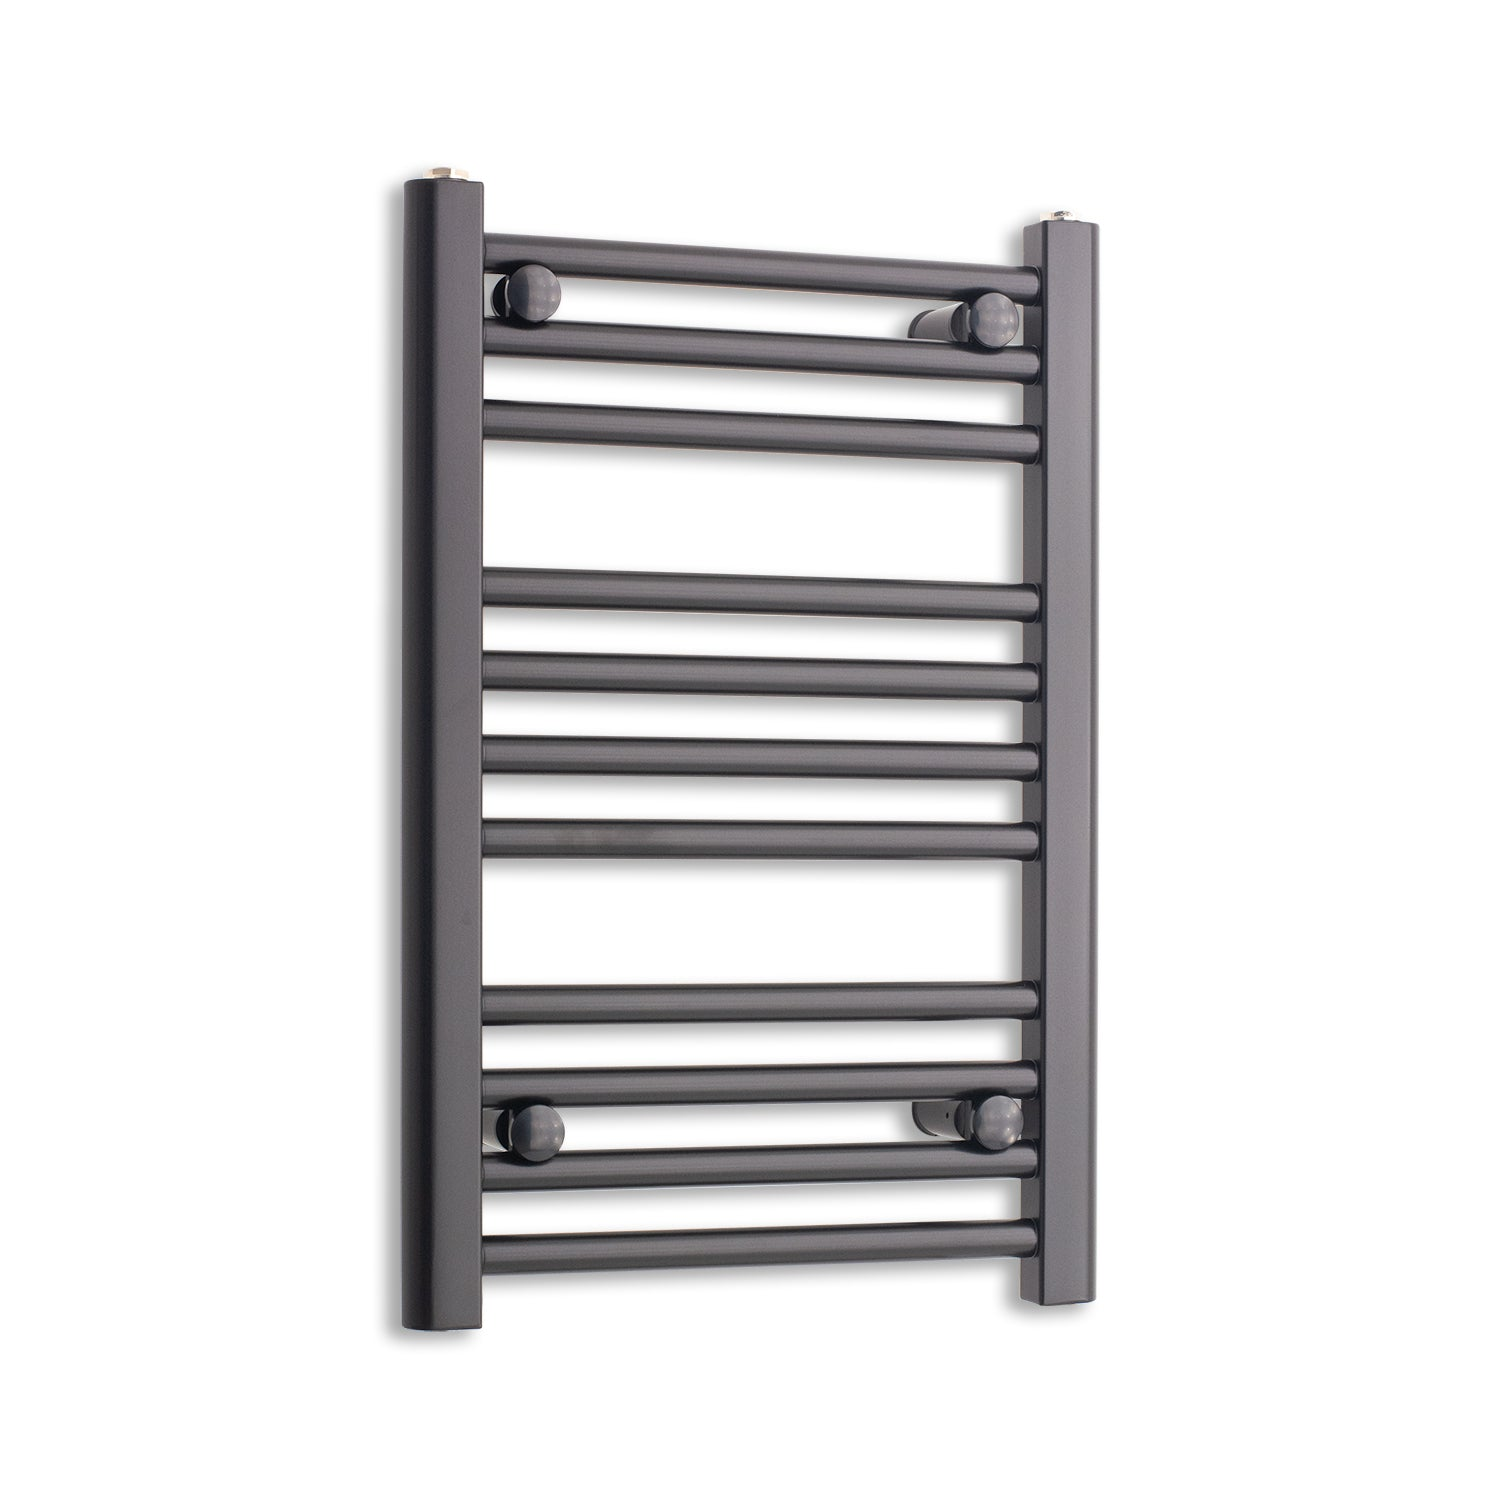 400mm Wide 600mm High Flat Black Heated Towel Rail Radiator,Towel Rail Only